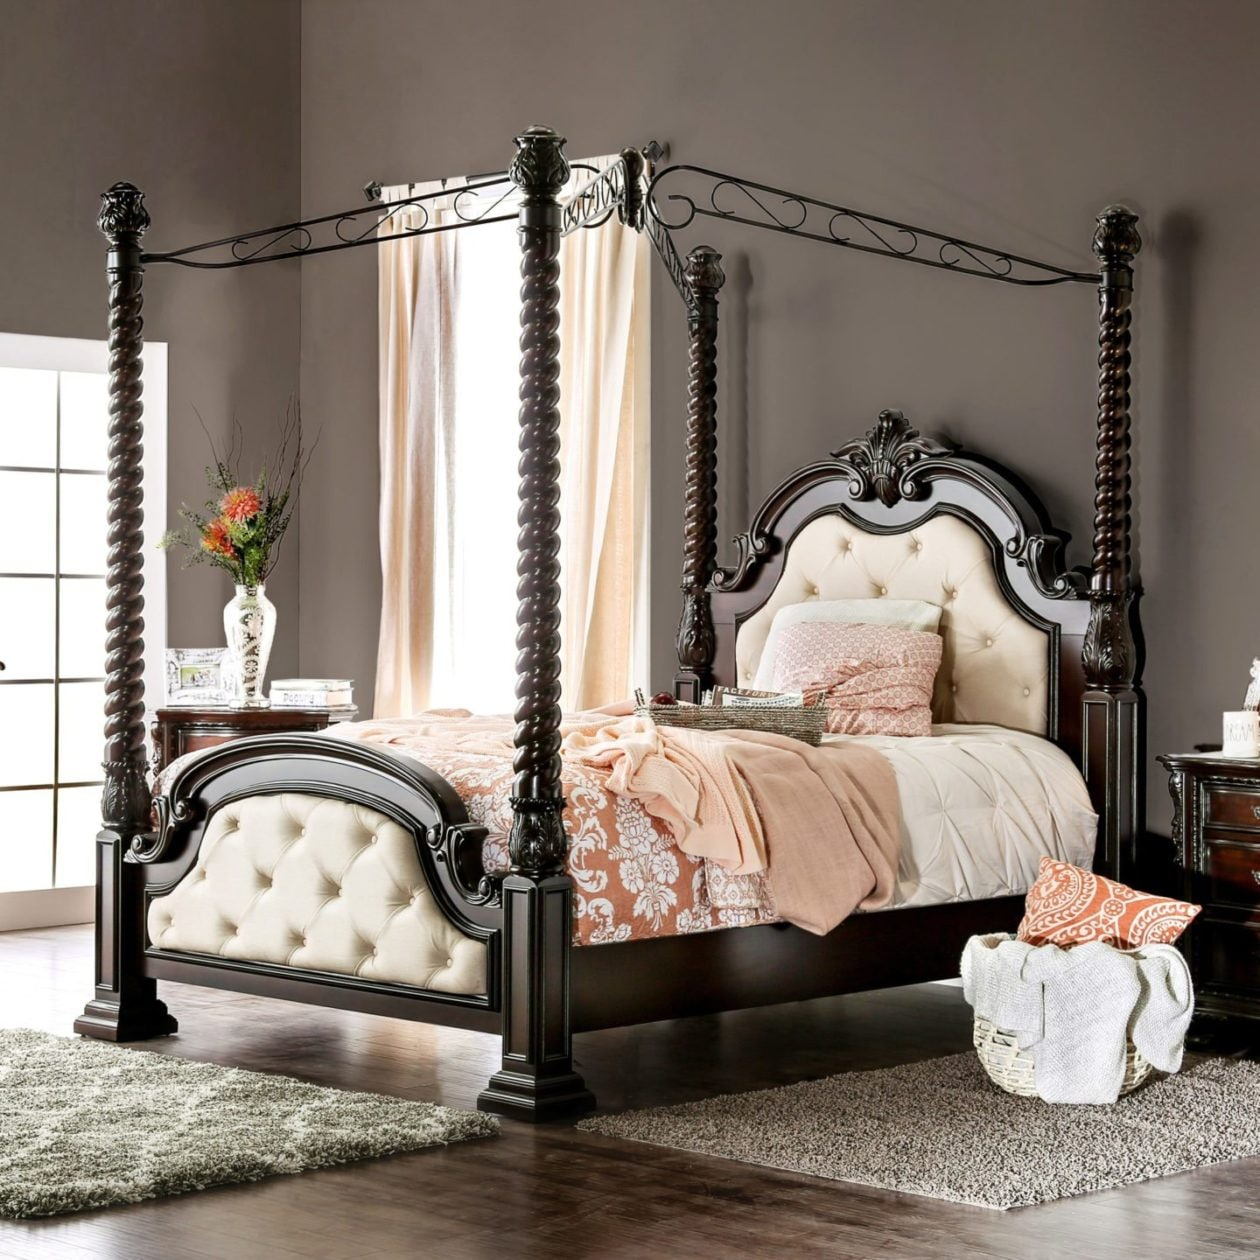 four poster bed frame with tufted fabric headboard and traditional scrollwork